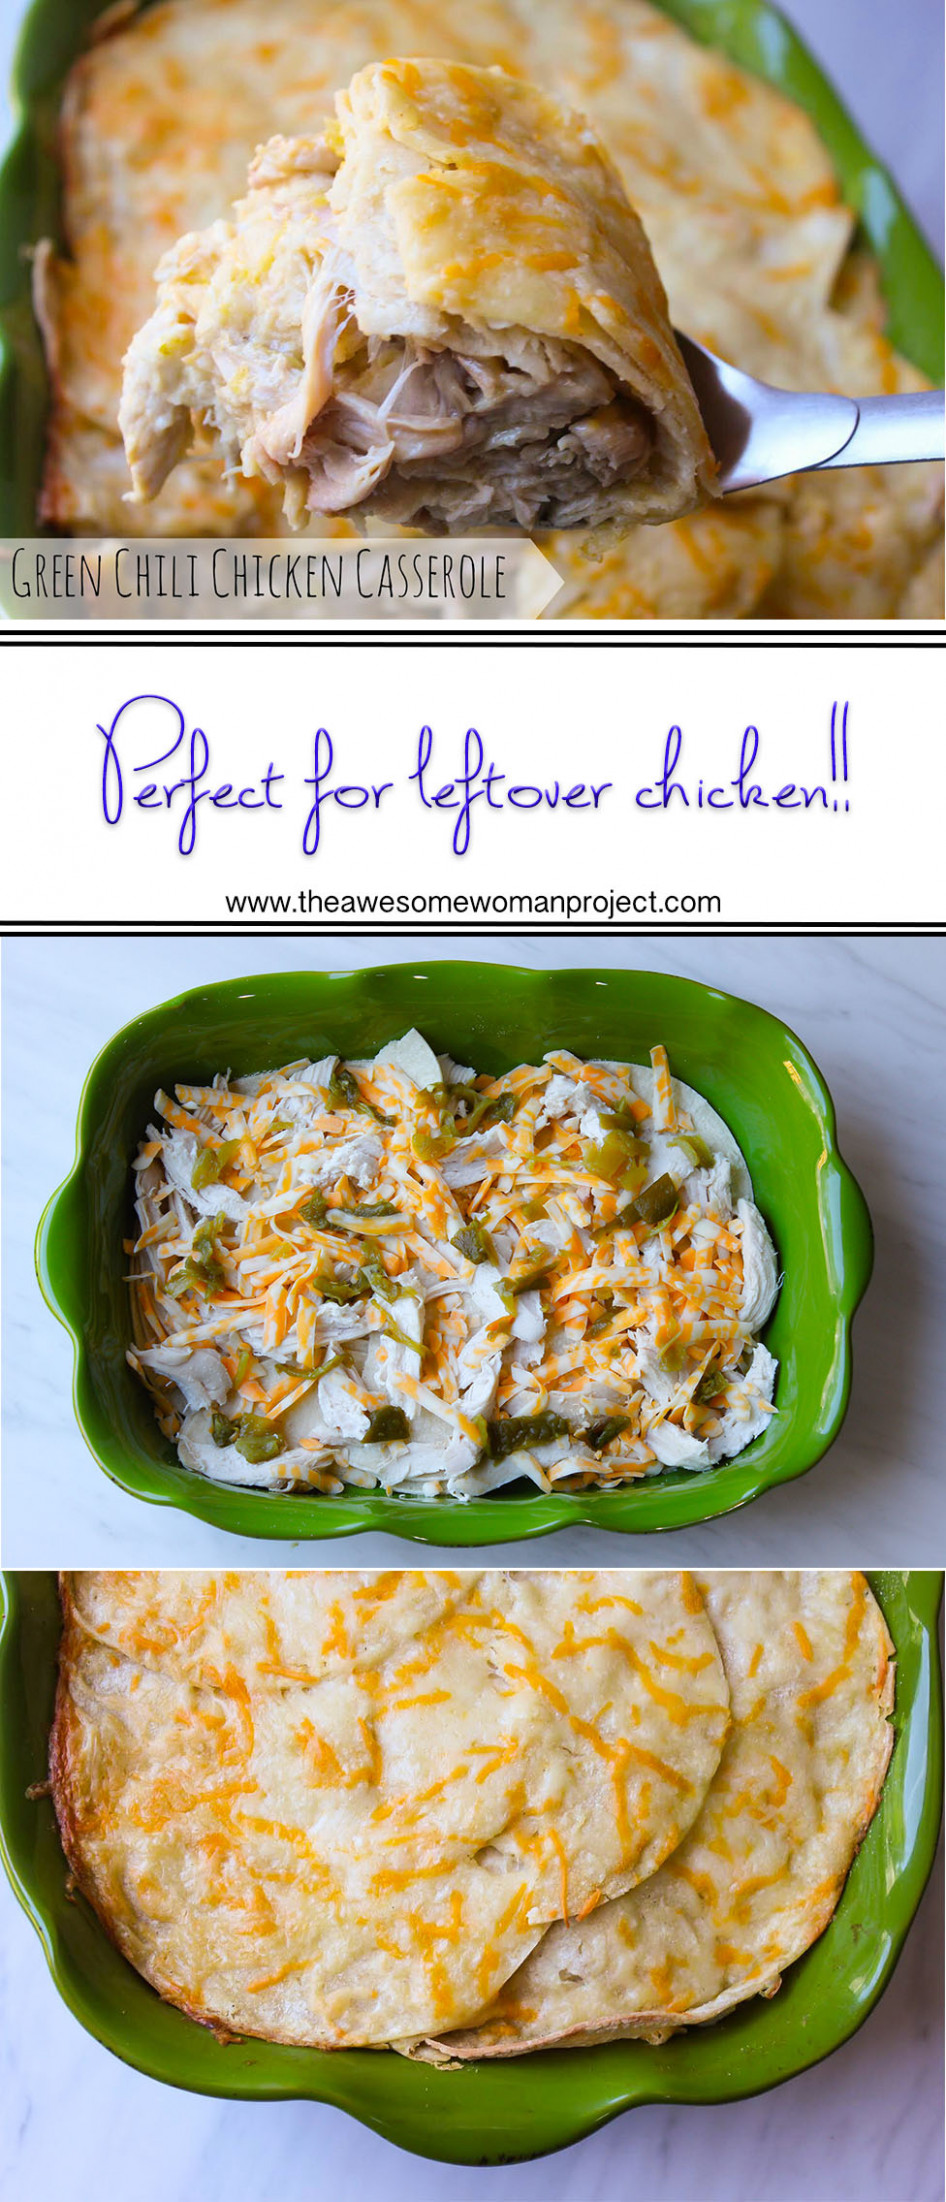 Green Chili Chicken Casserole | The Awesome Woman Project